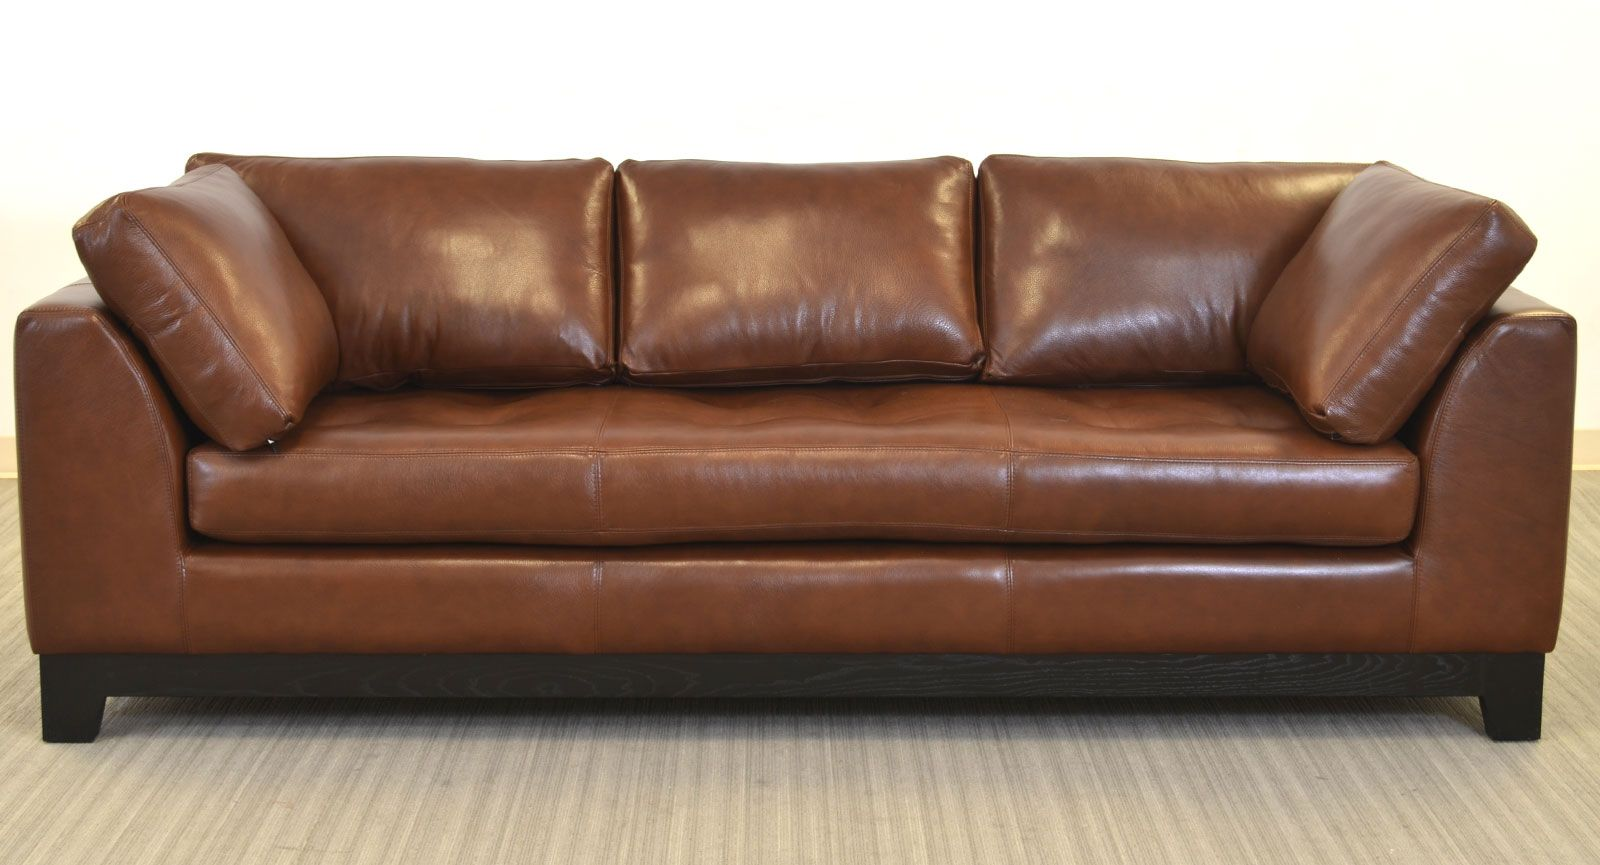 Alexandria Sofa By The Leather Co